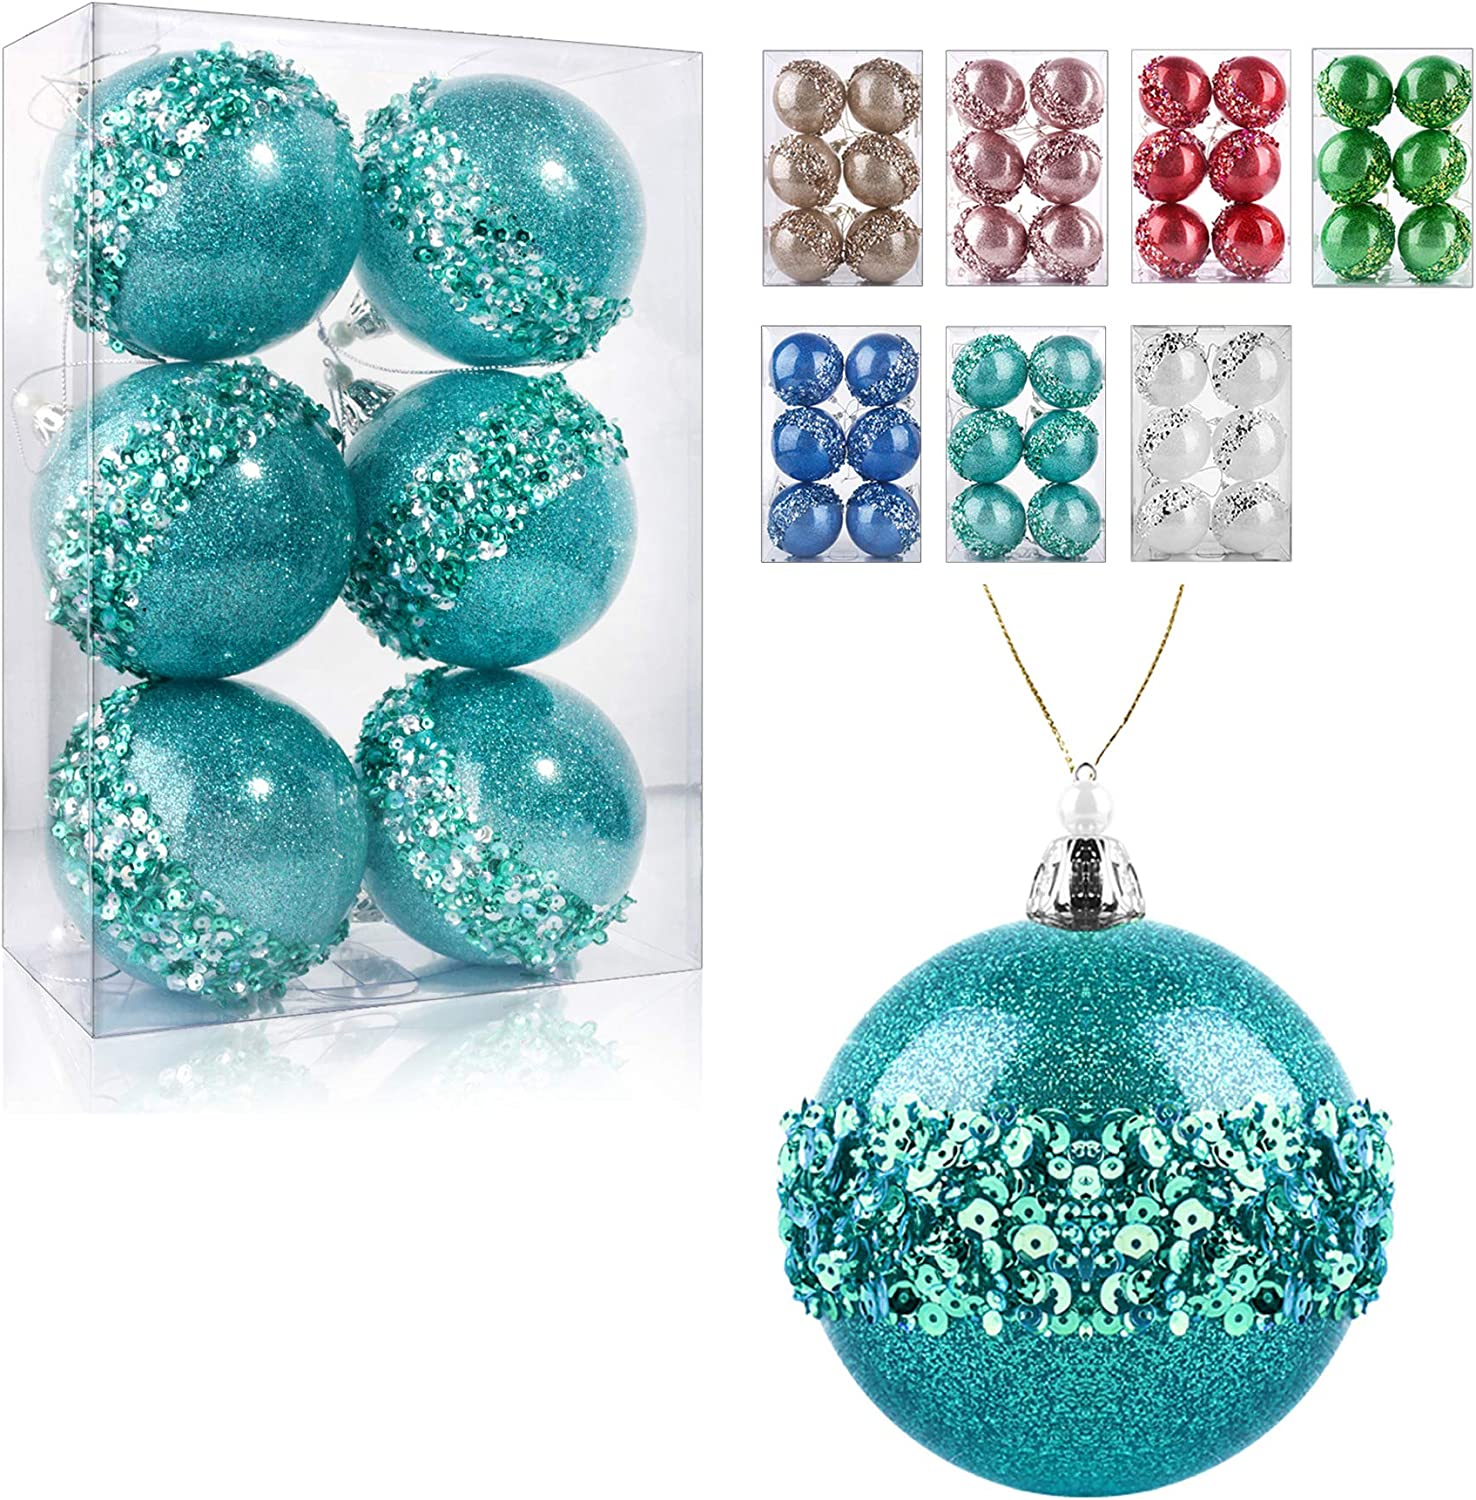 ZHANYIGY 3.15Inch Clear Ornaments Balls,6pc Set Light Blue Christmas Ball Decorations Ornaments Perfect Party Decorations Craft Transparent Ball Gifts for Wedding Party Decor (Light Blue)